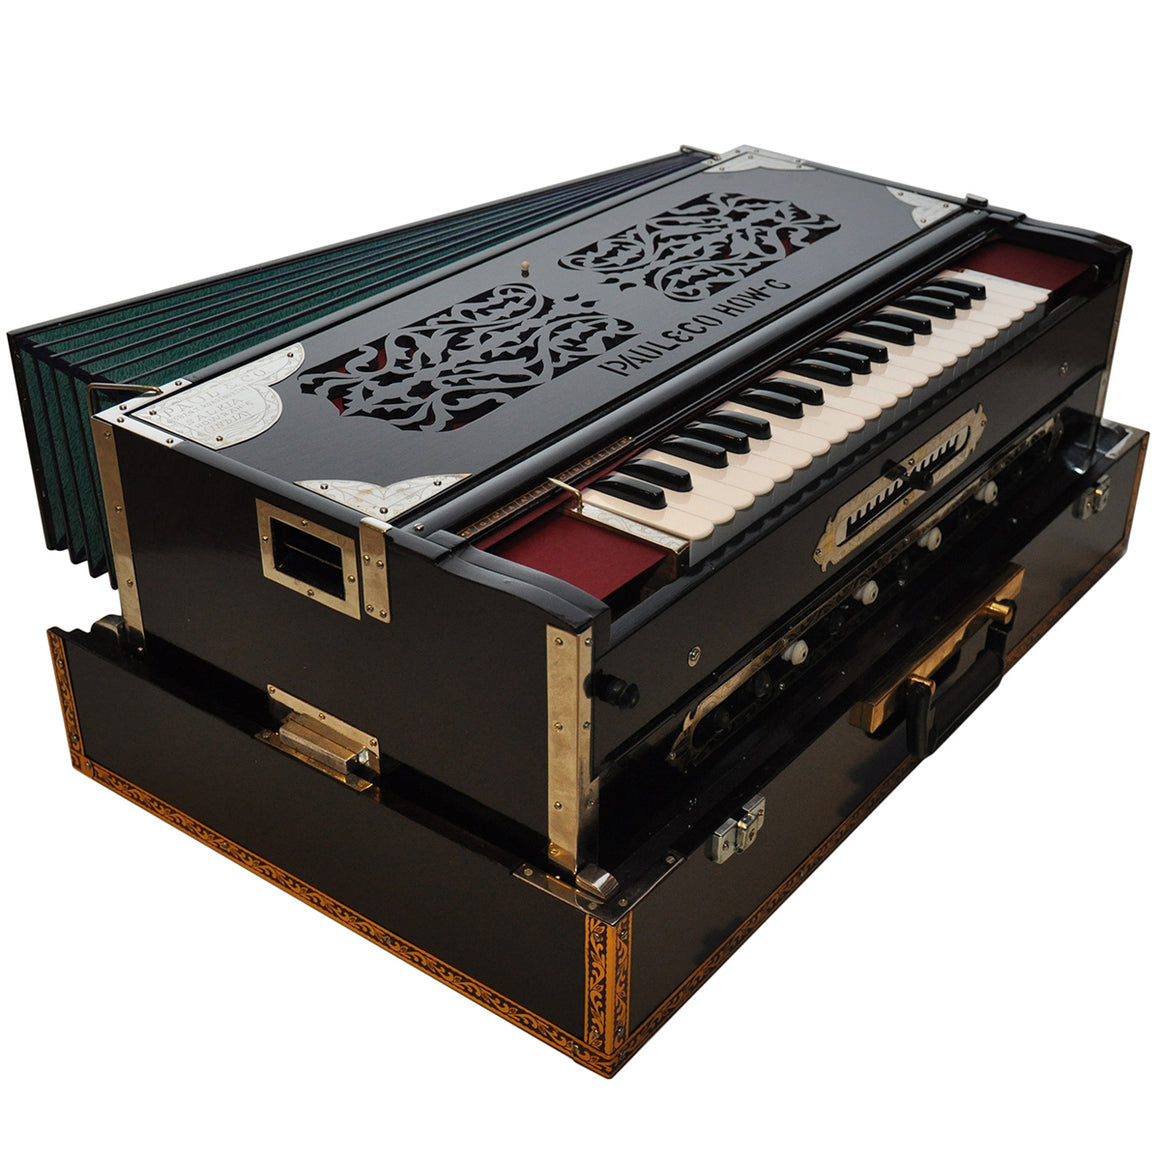 Paul & Company 13/4 Scale Changer Harmonium